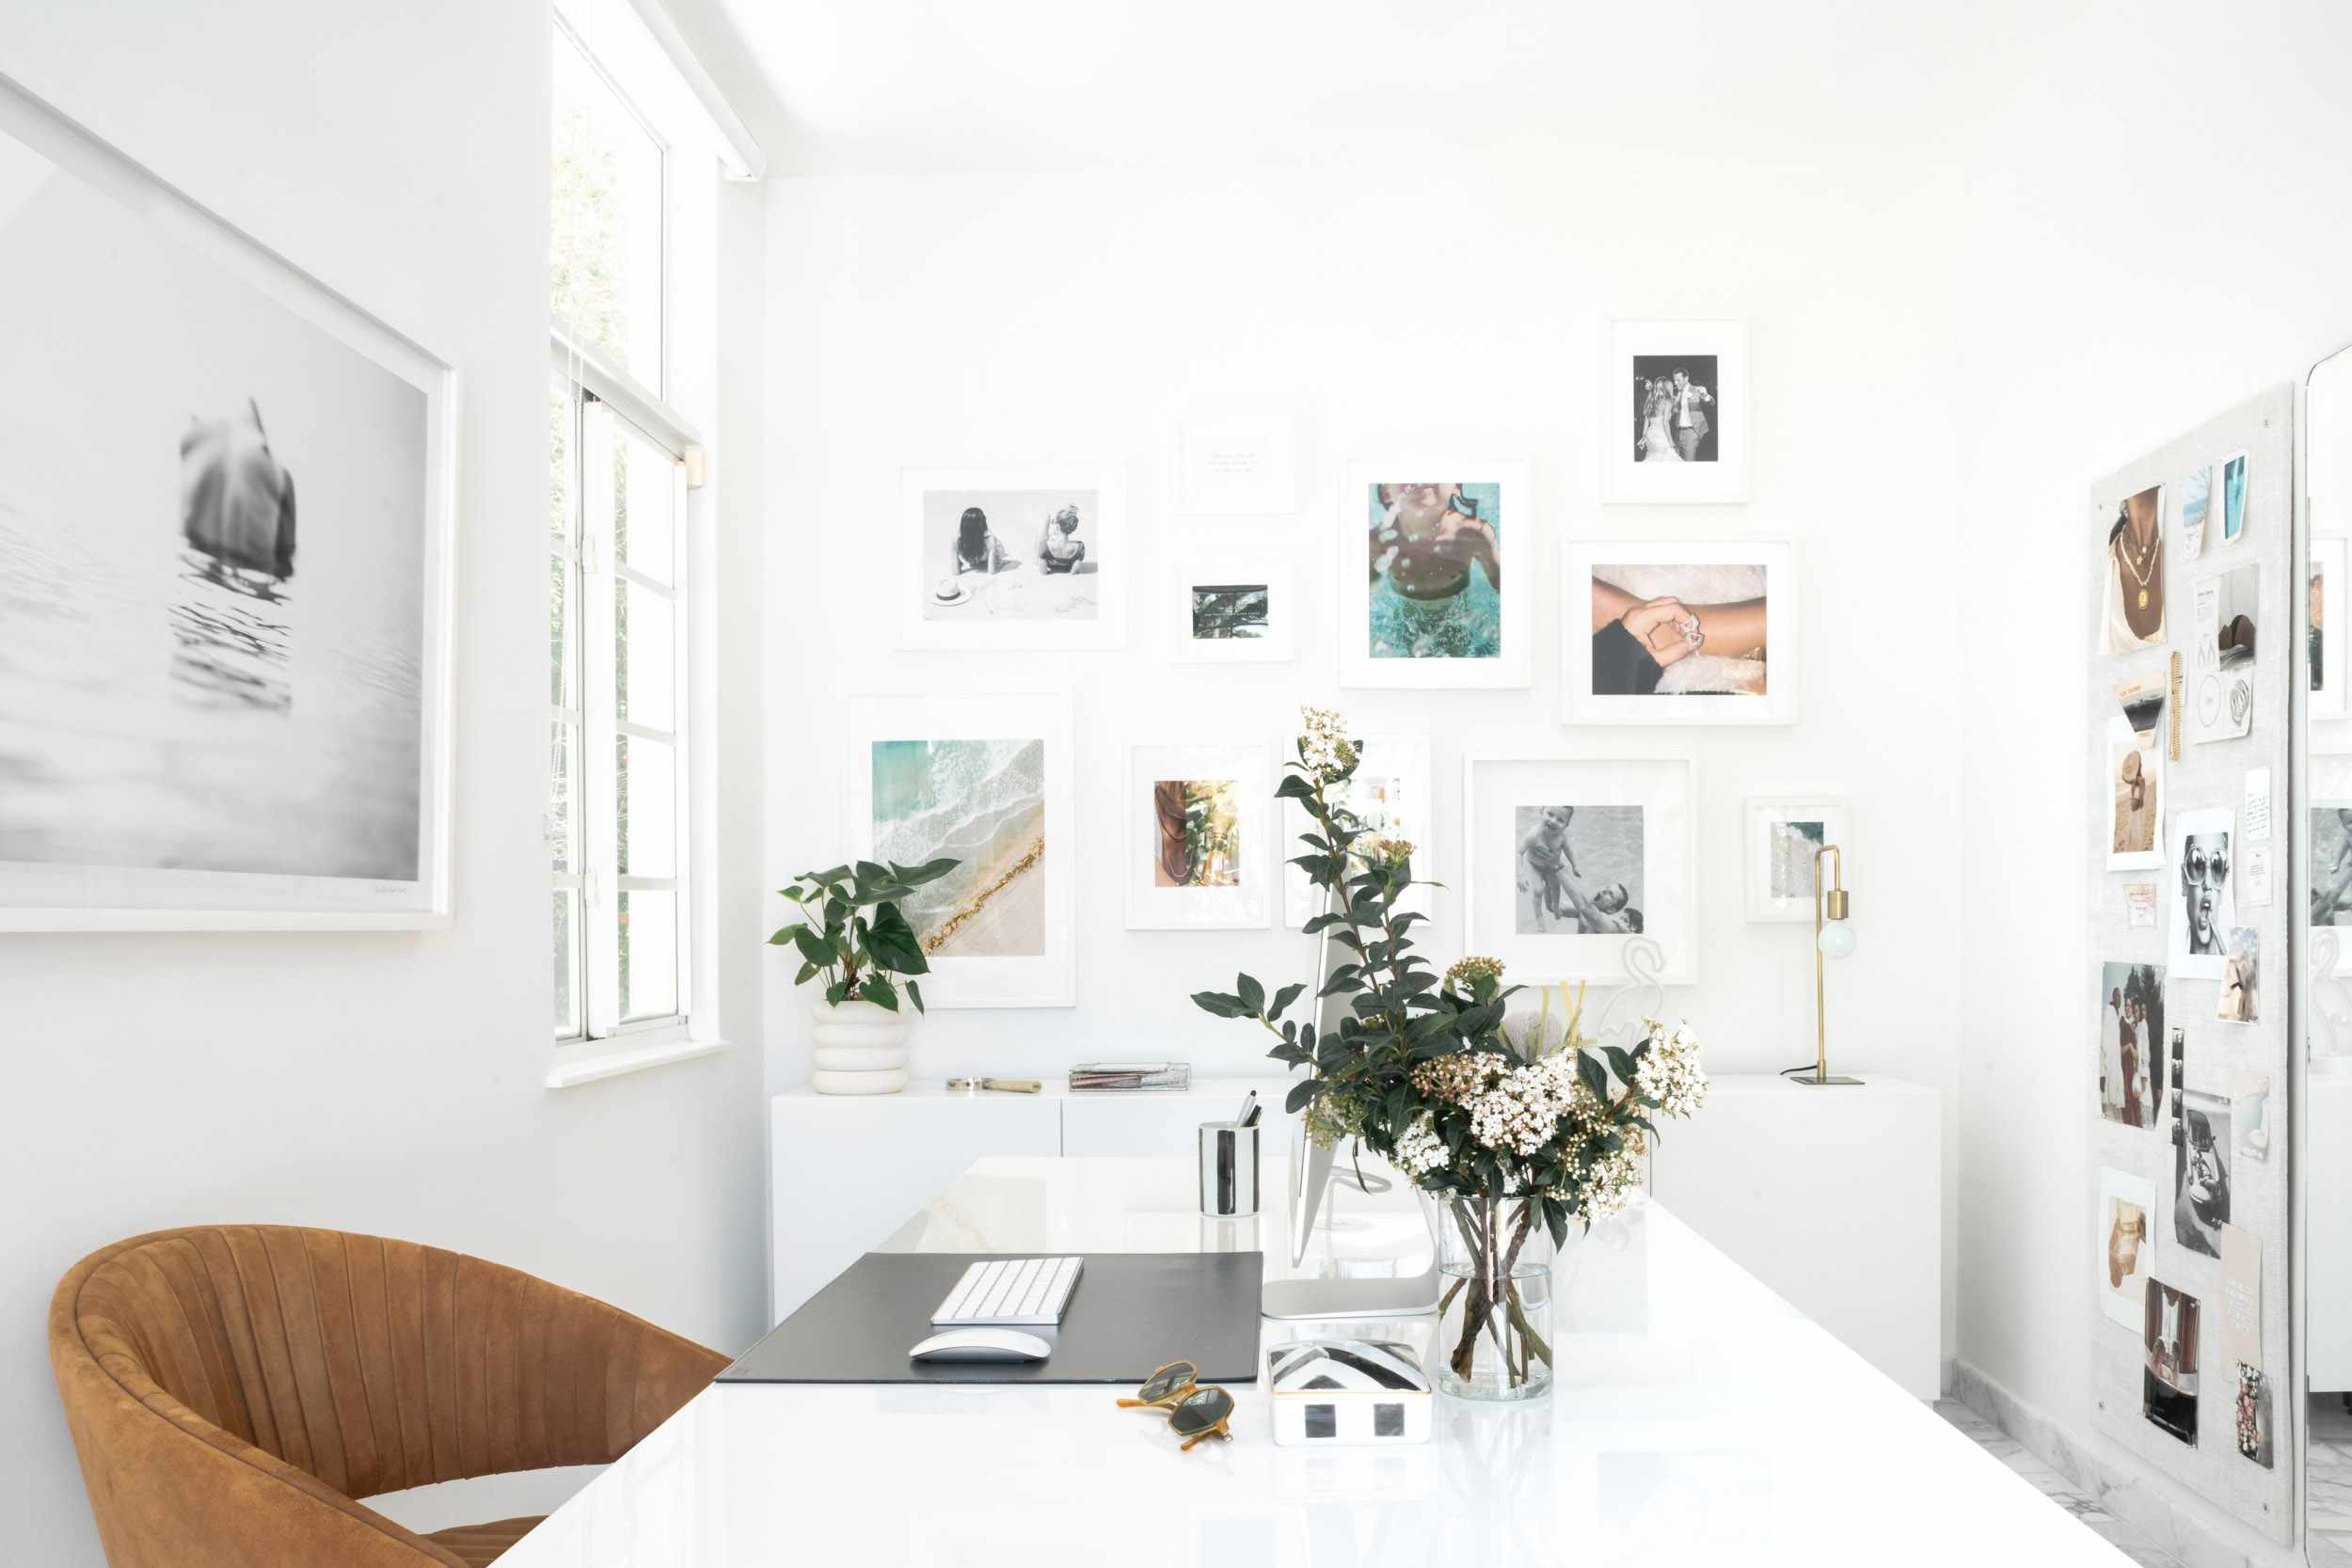 Office space with gallery wall.